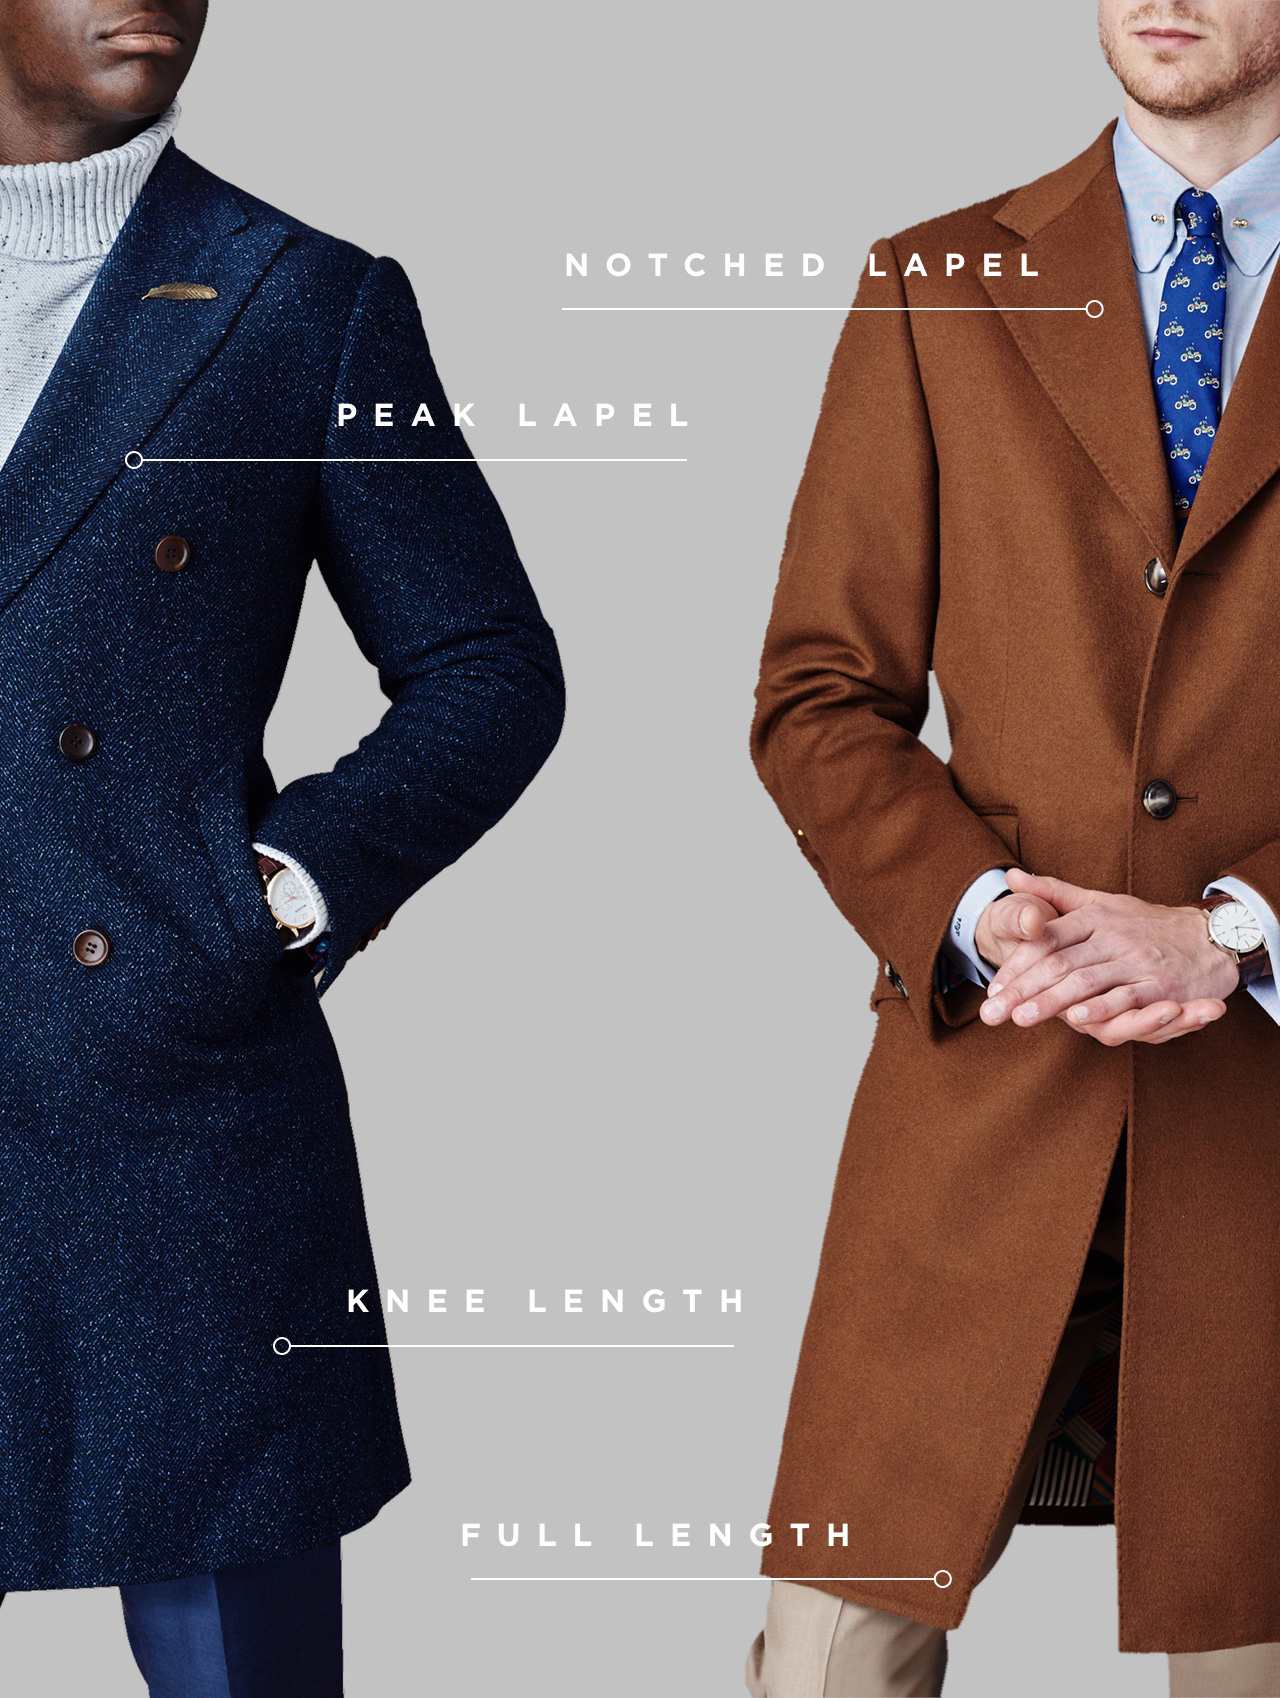 SOON - VERY SOON You'll need a great overcoat. Here's what to consider to create your next favorite garment.